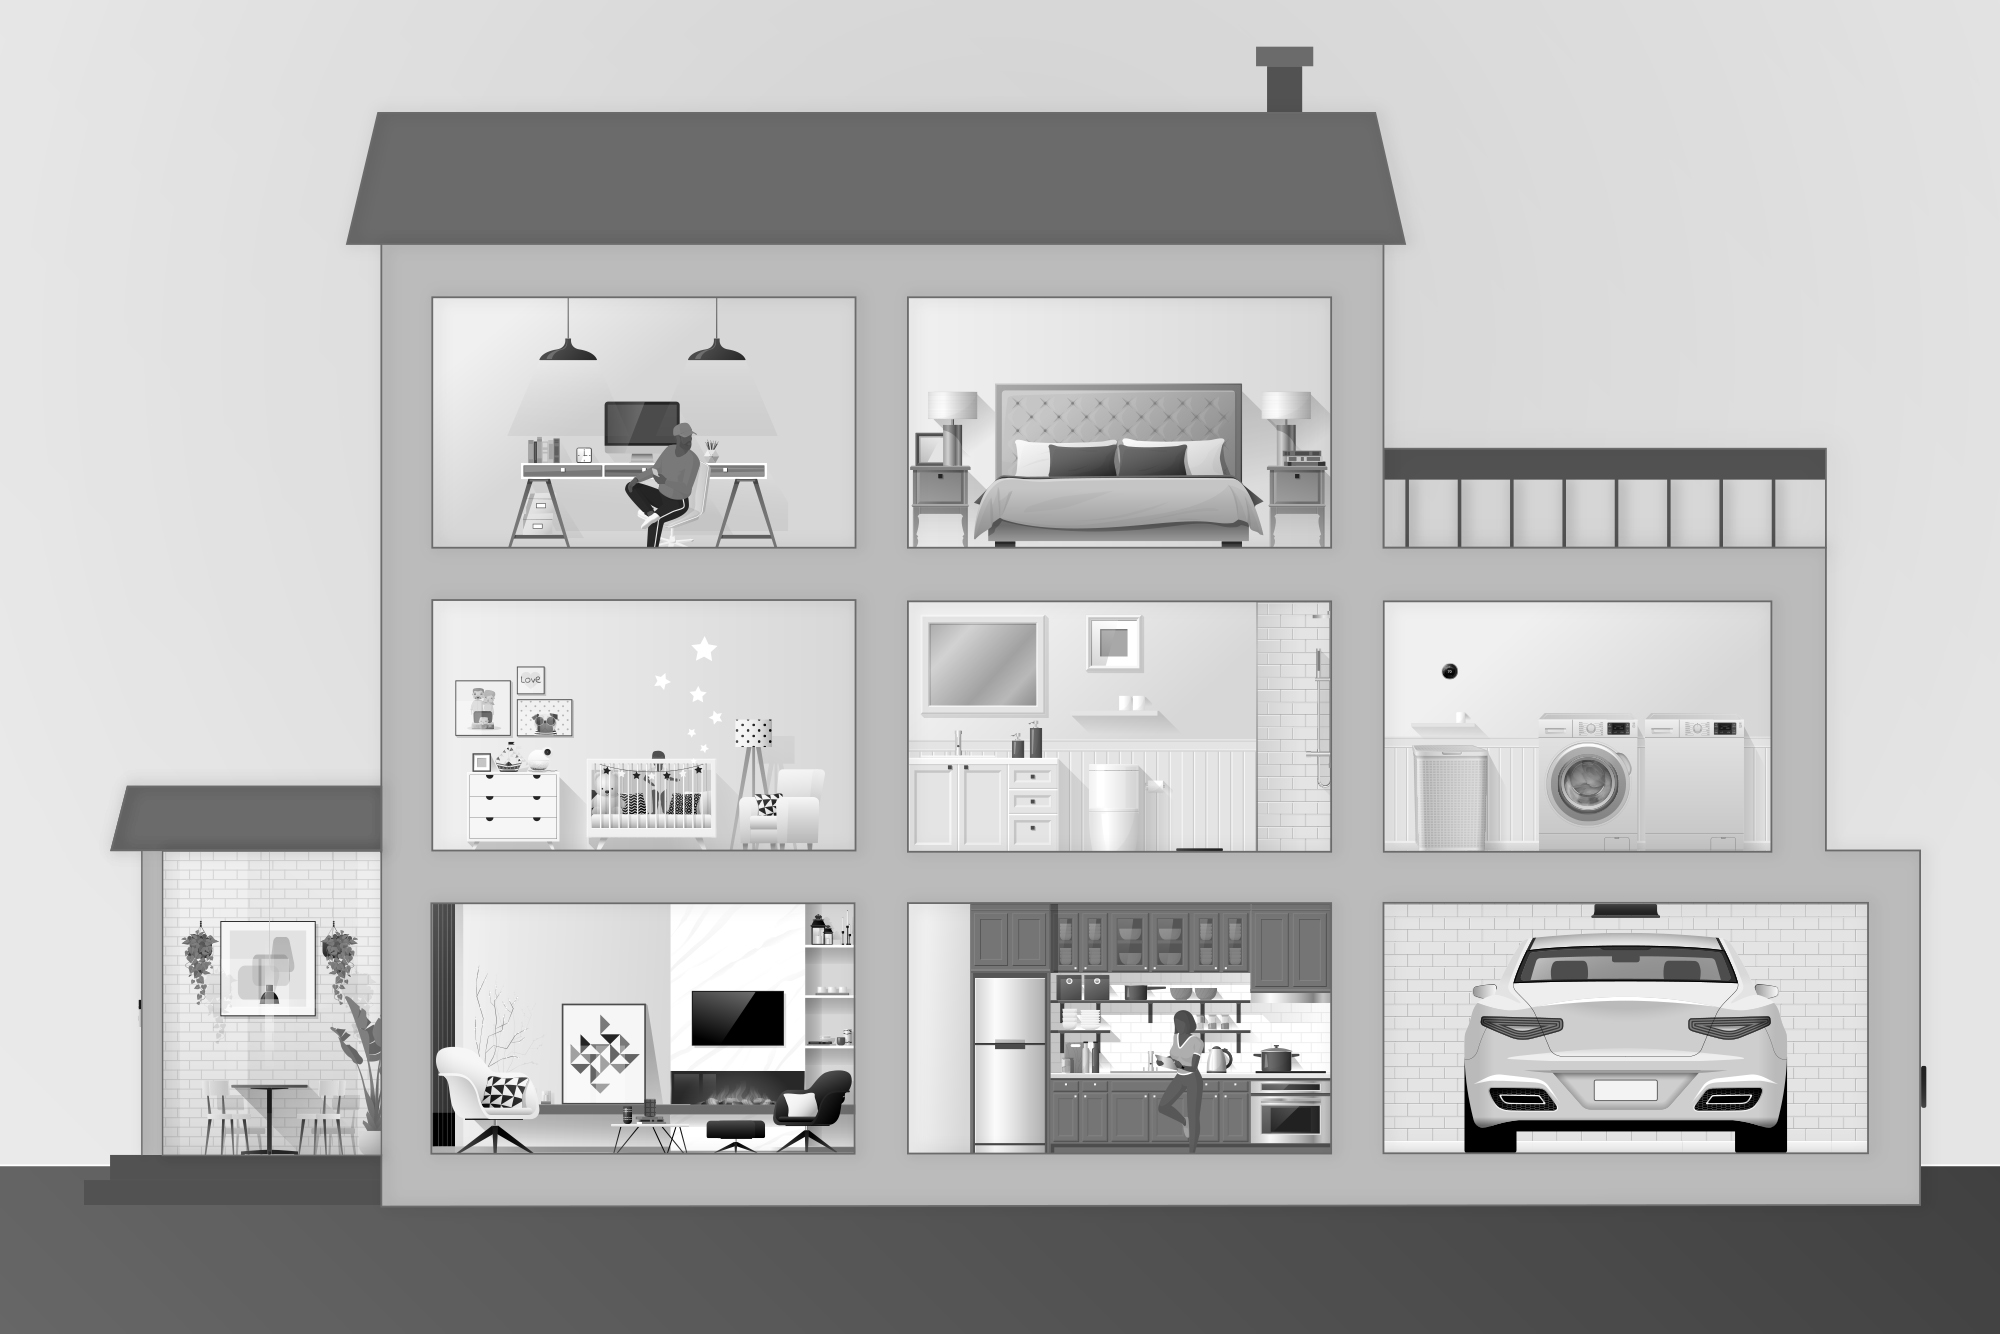 The Internet of Things and Home Automation